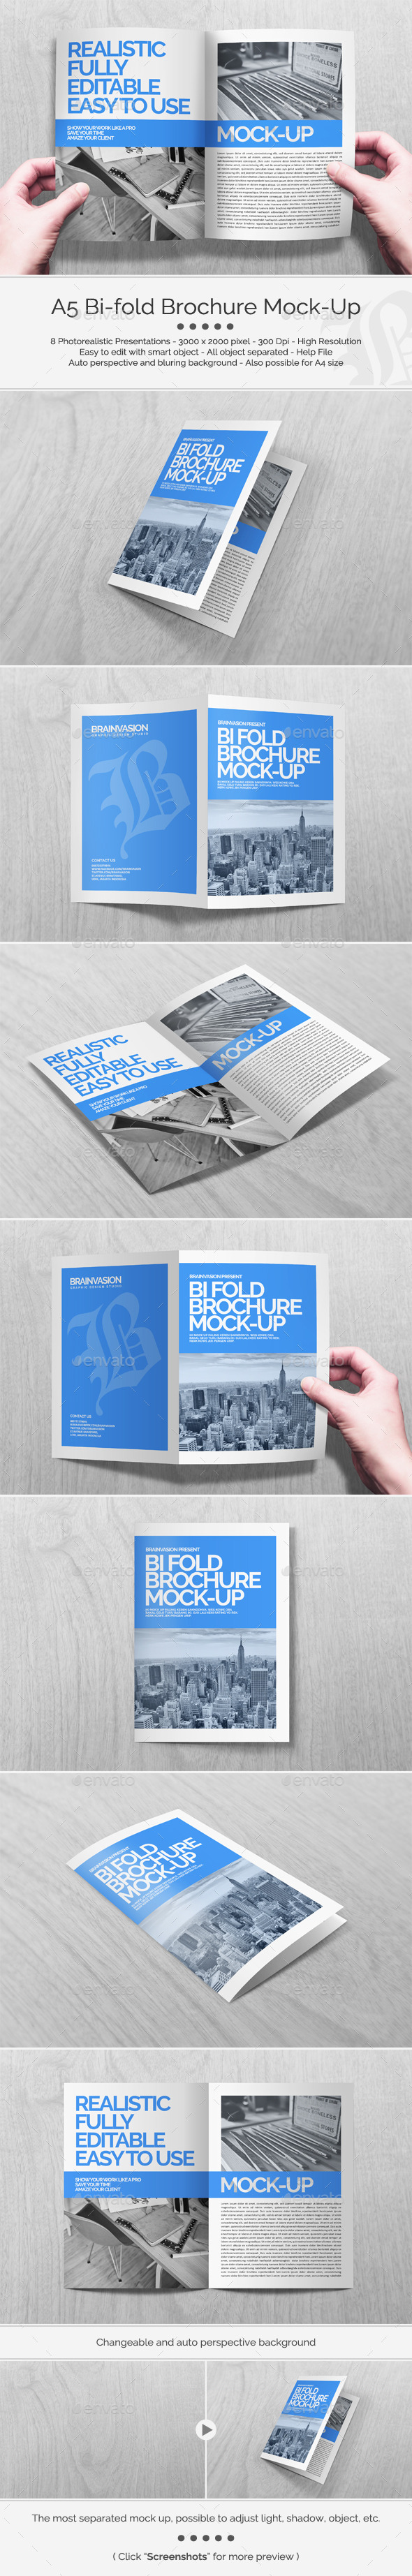 GraphicRiver A5 Bi-fold Brochure Mock-Up Set 11269416